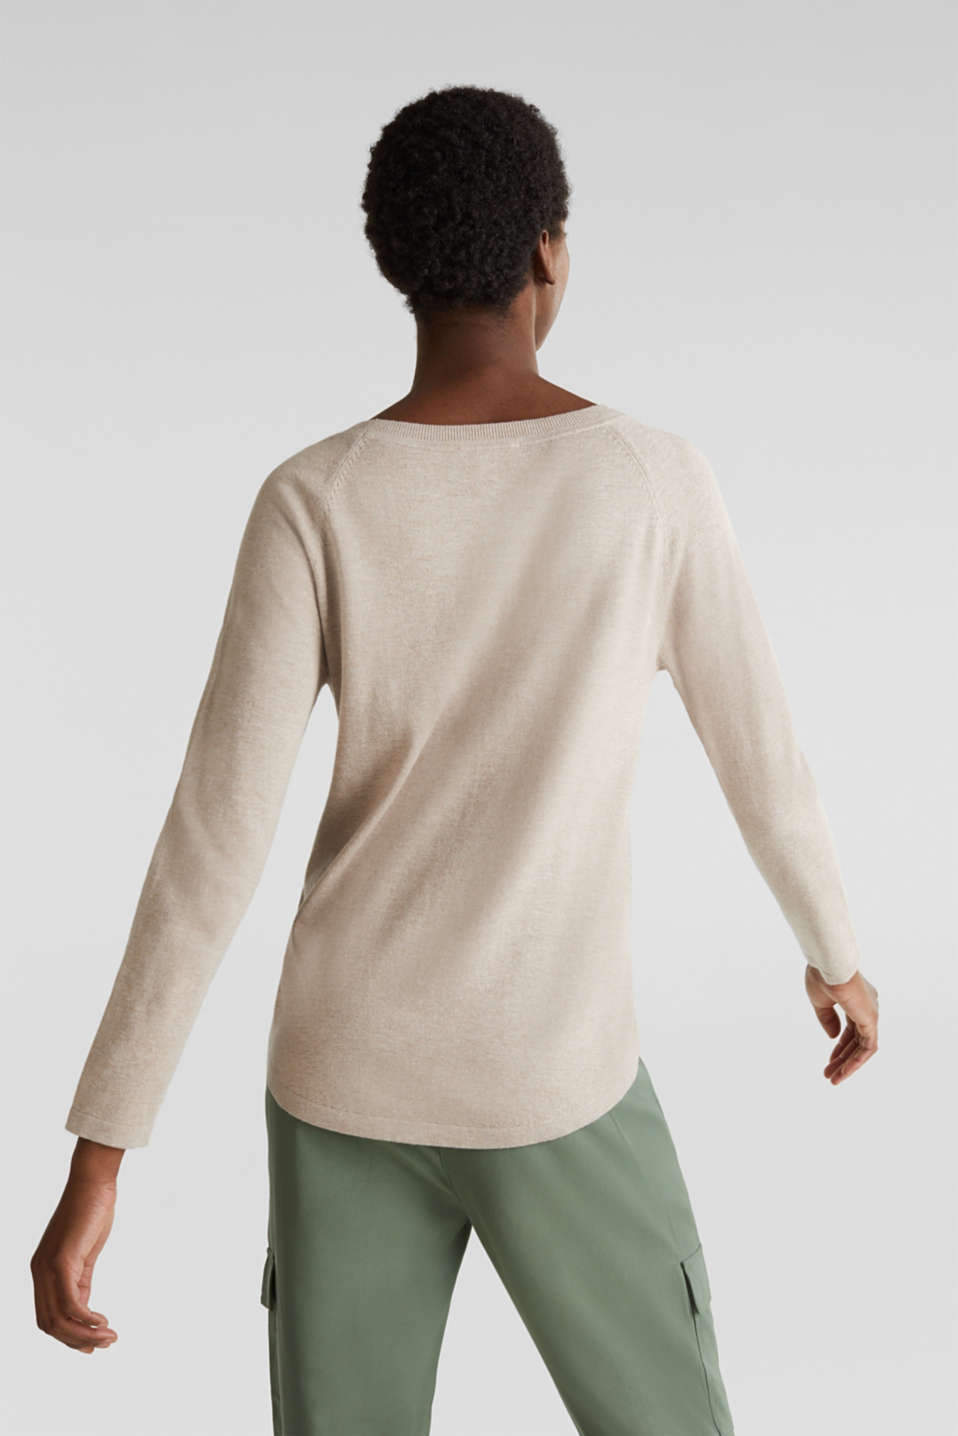 With linen: Jumper with open-work patterned details, BEIGE 5, detail image number 2